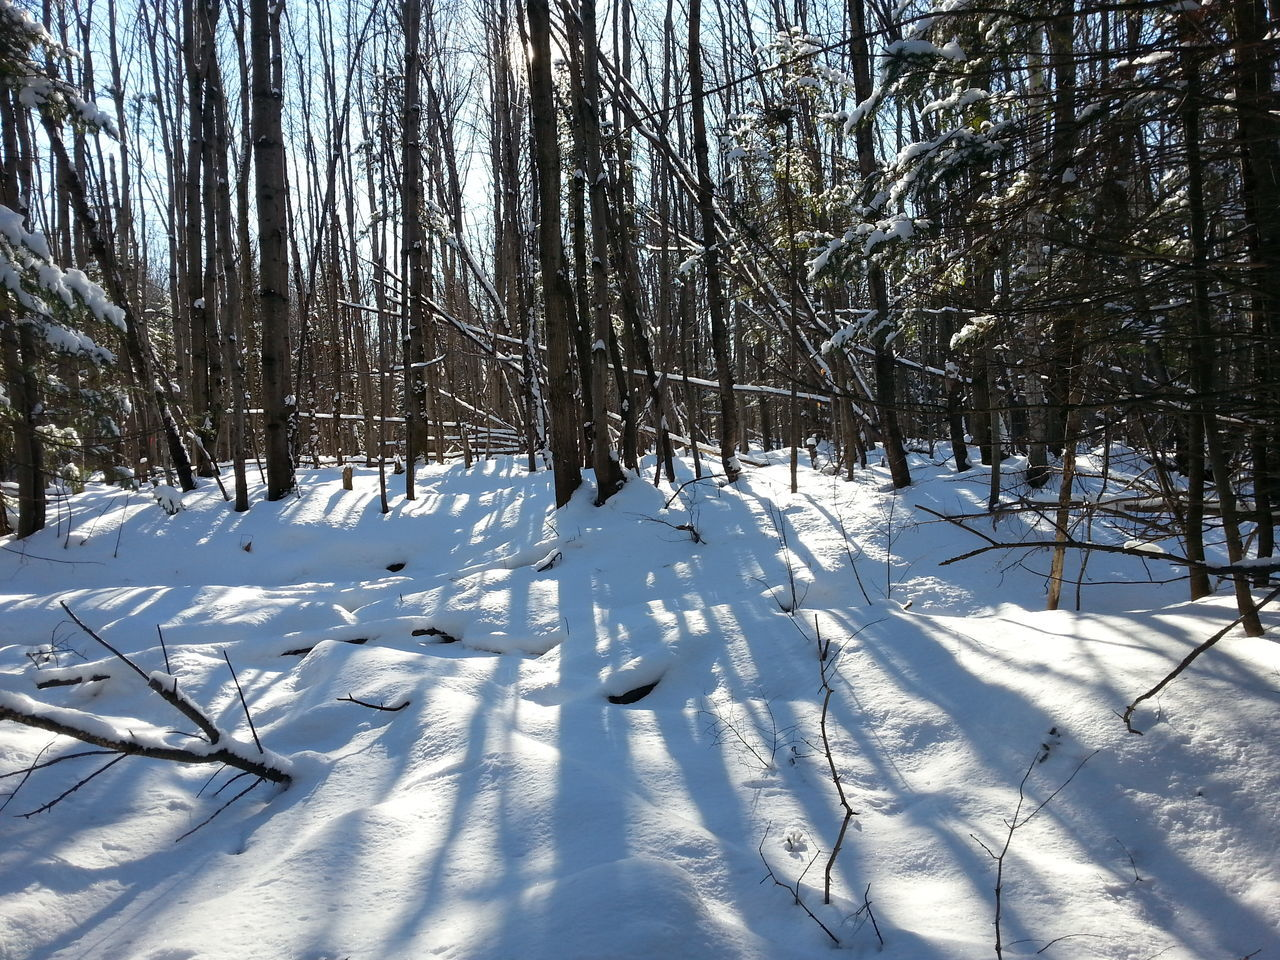 winter, cold temperature, snow, tranquility, nature, tranquil scene, white color, beauty in nature, tree, bare tree, scenics, weather, sunlight, day, outdoors, no people, shadow, landscape